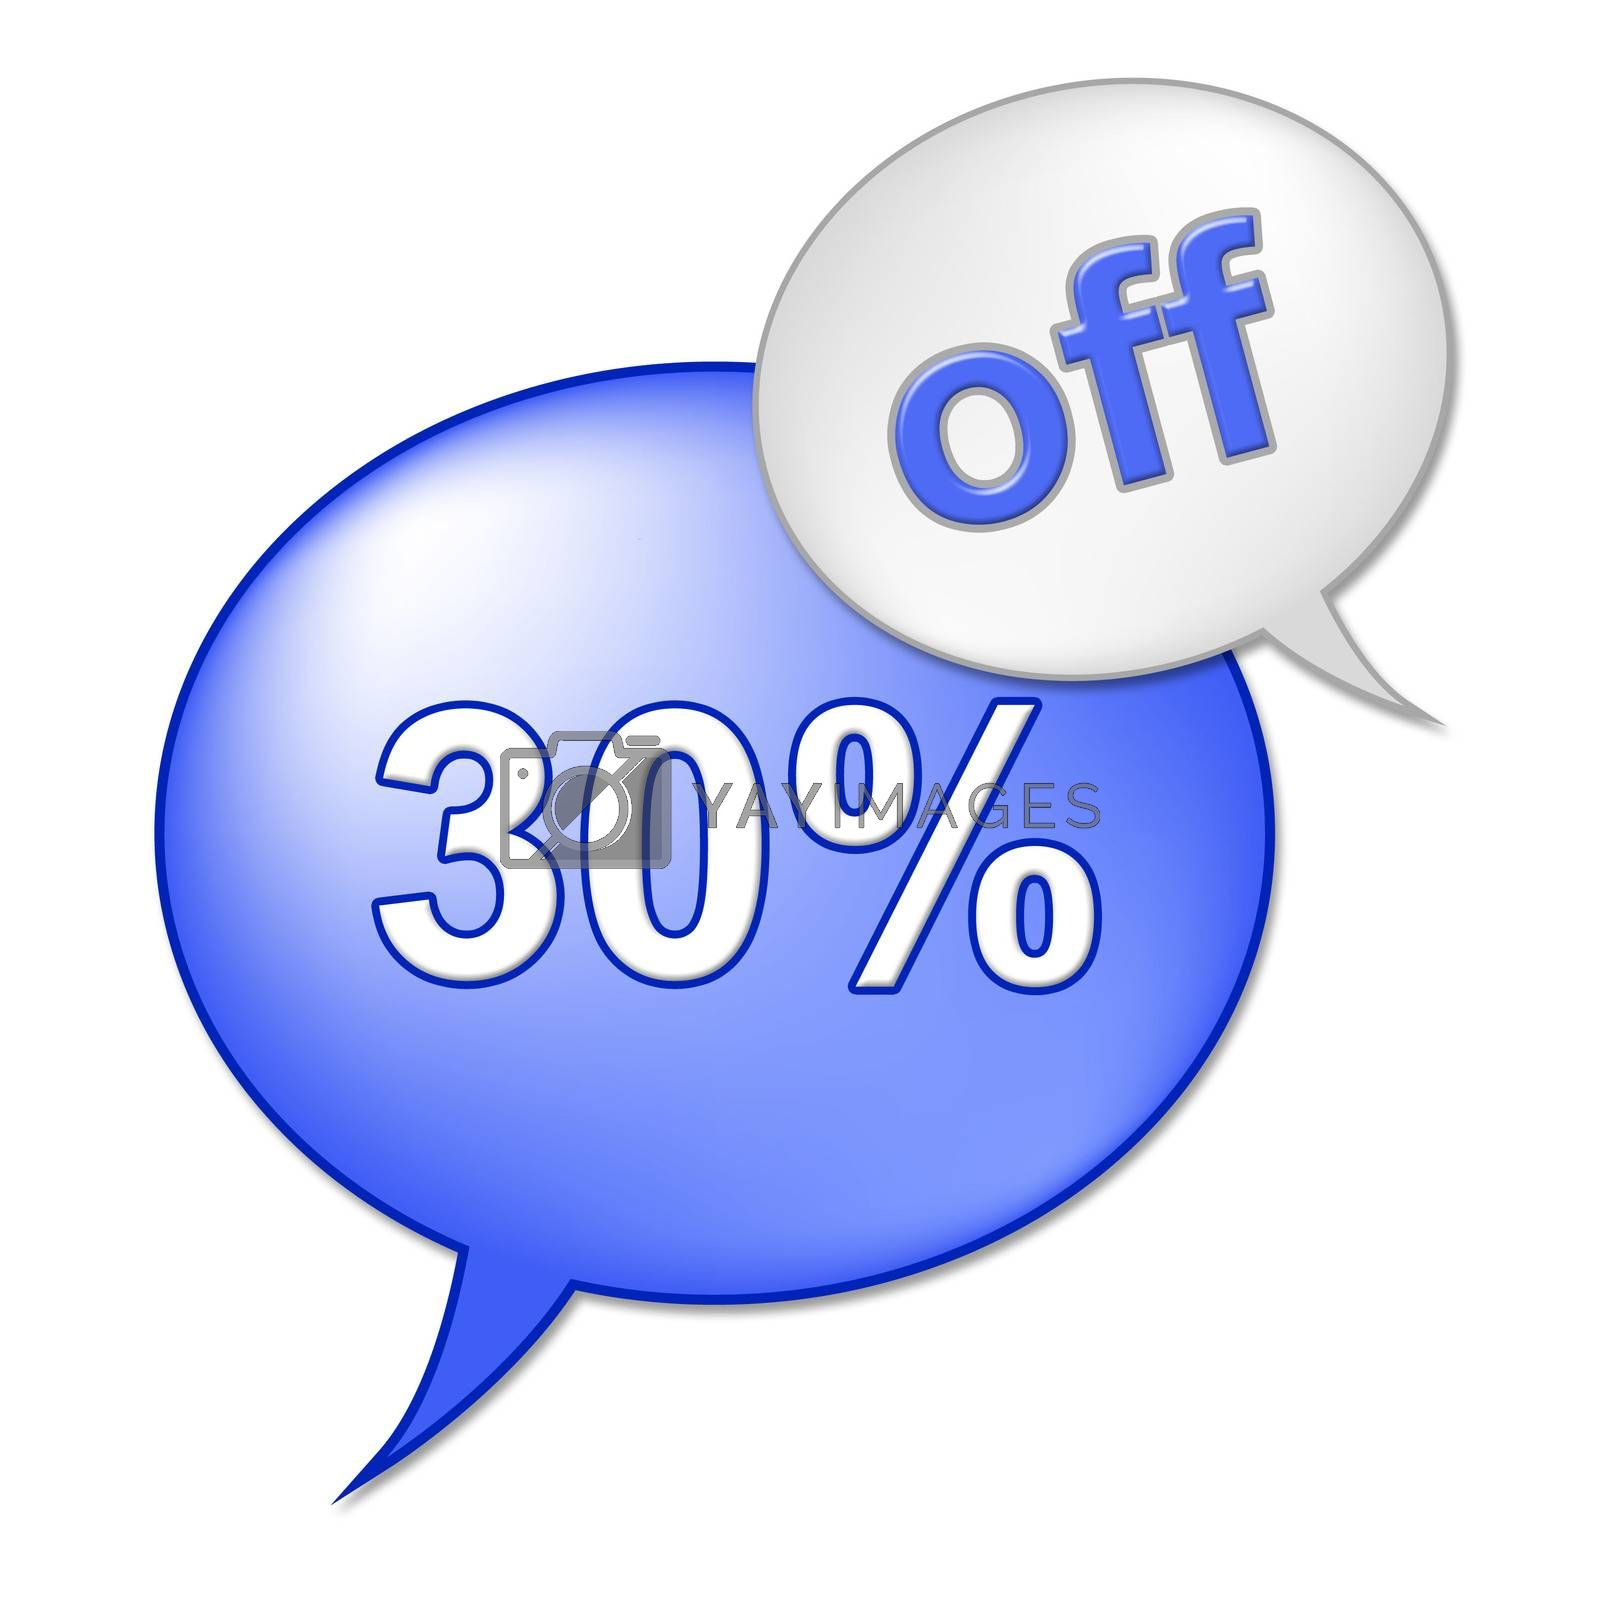 Thirty Percent Off Shows Reduction Save And Cheap by stuartmiles